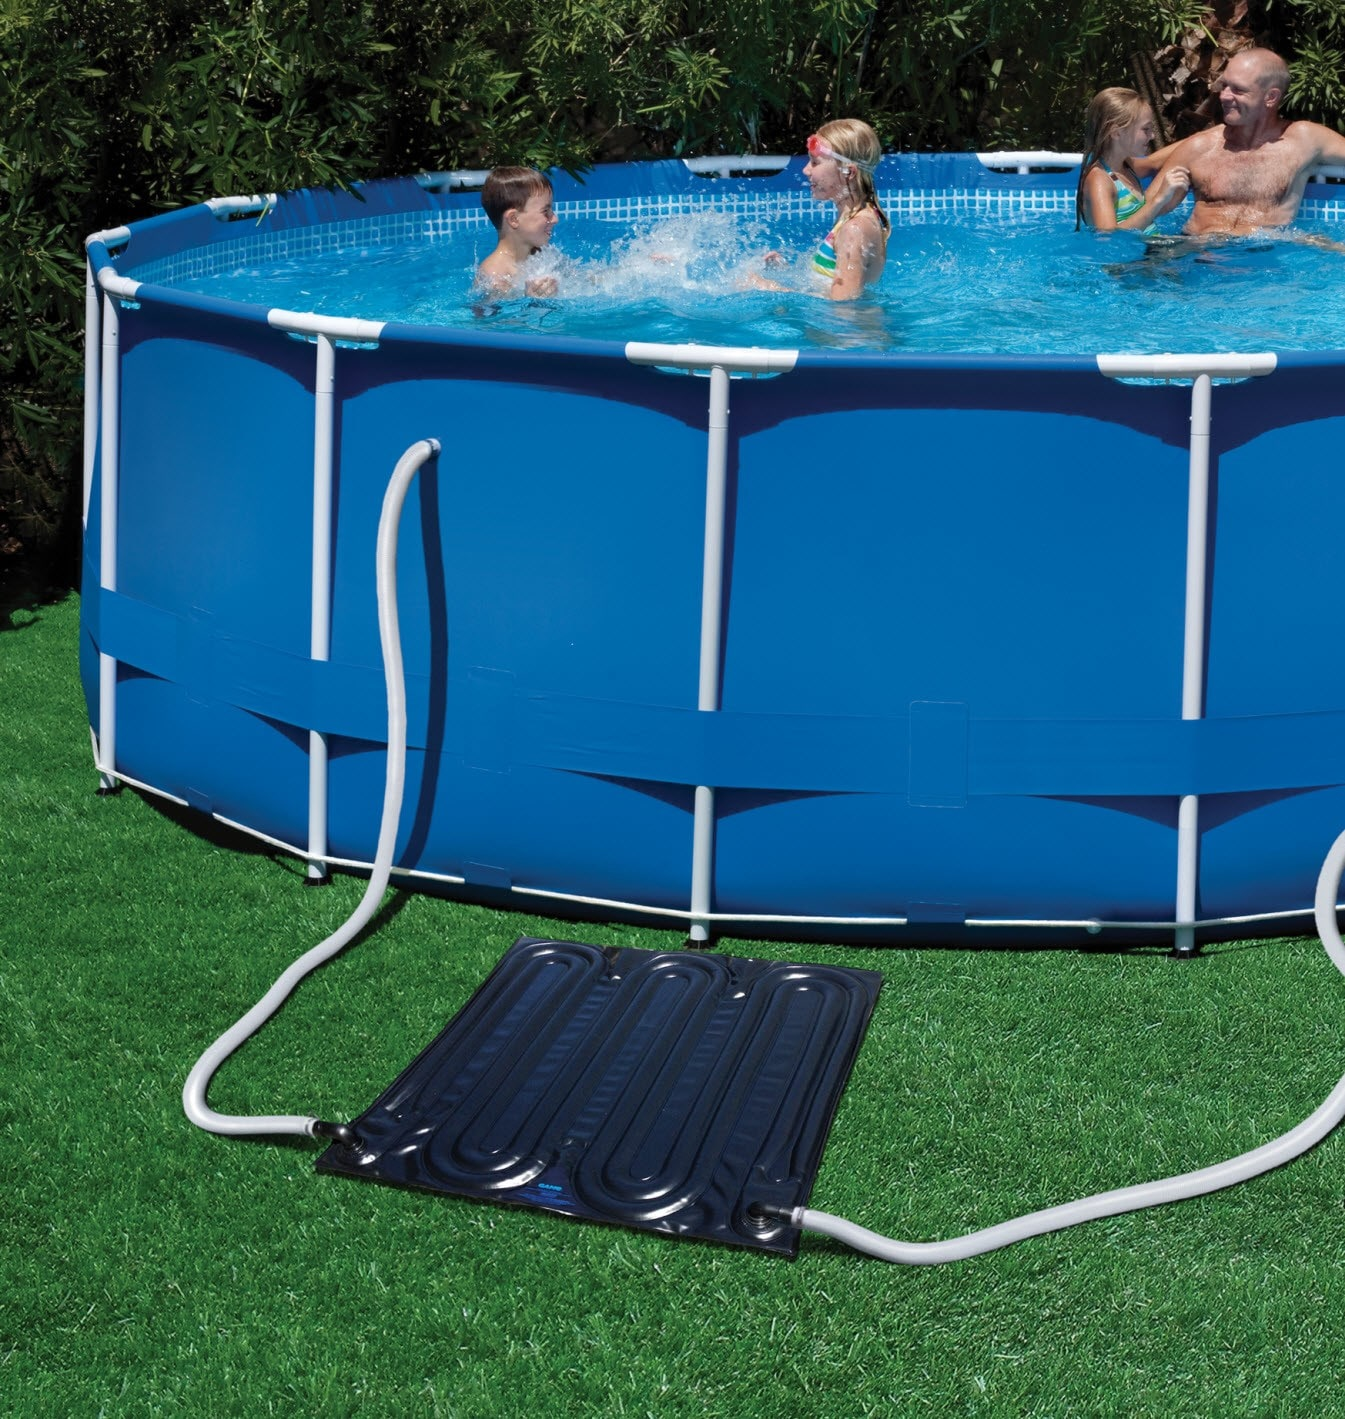 Buyers guide to solar pool heaters for Piscina 5 x 10